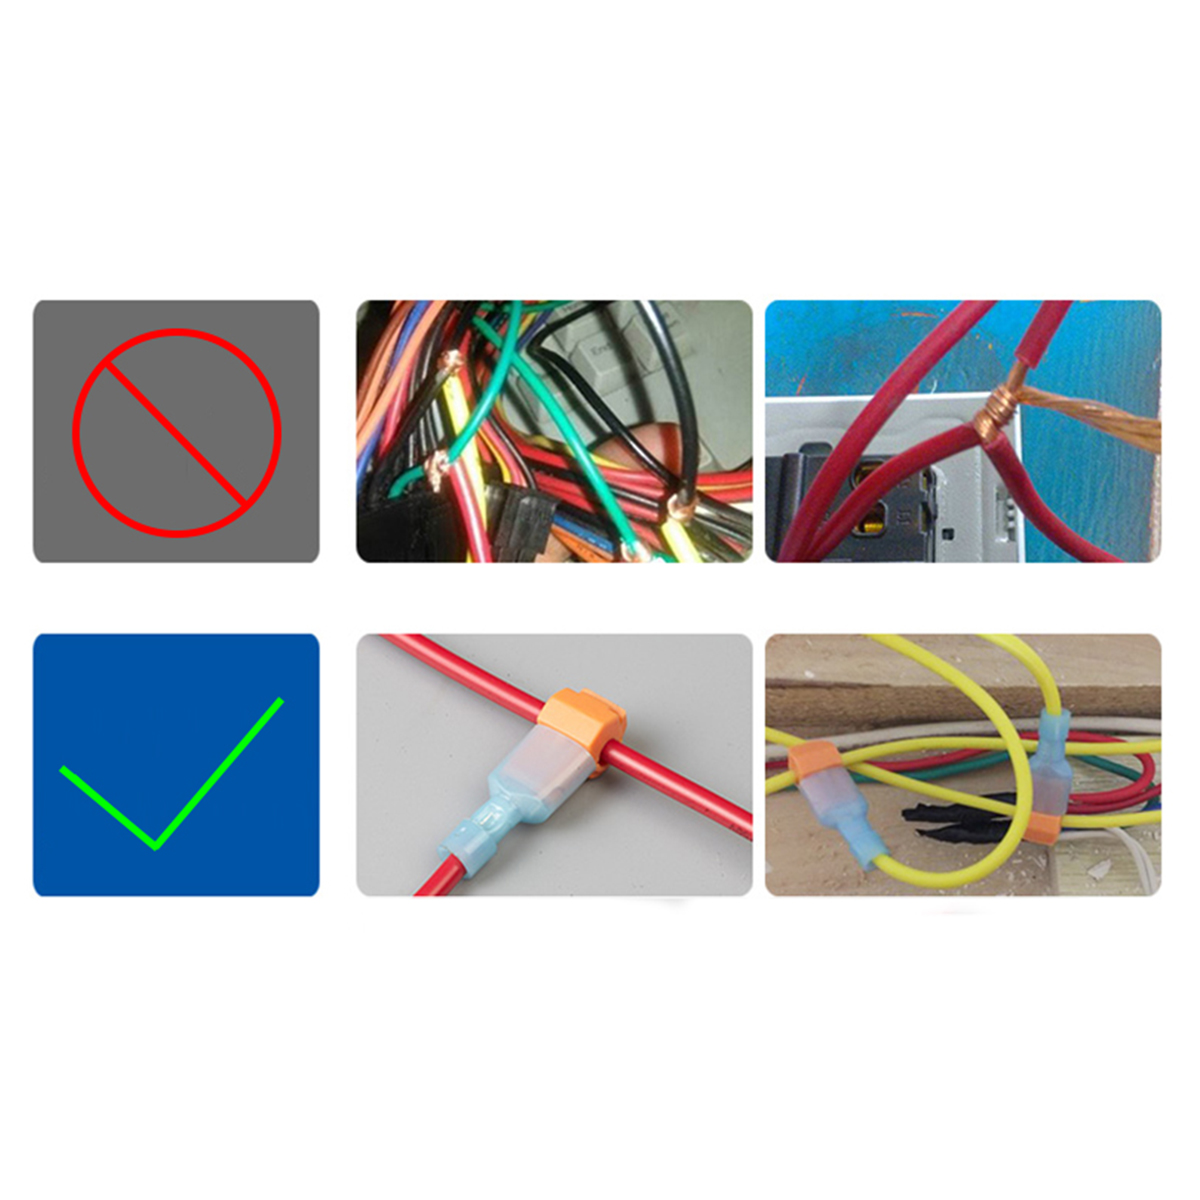 Image 5 - 240pcs T Tap Wire Connectors, Self Stripping Quick Splice Electrical Wire Terminals, Insulated Quick Disconnect Spade Terminals-in Connectors from Lights & Lighting